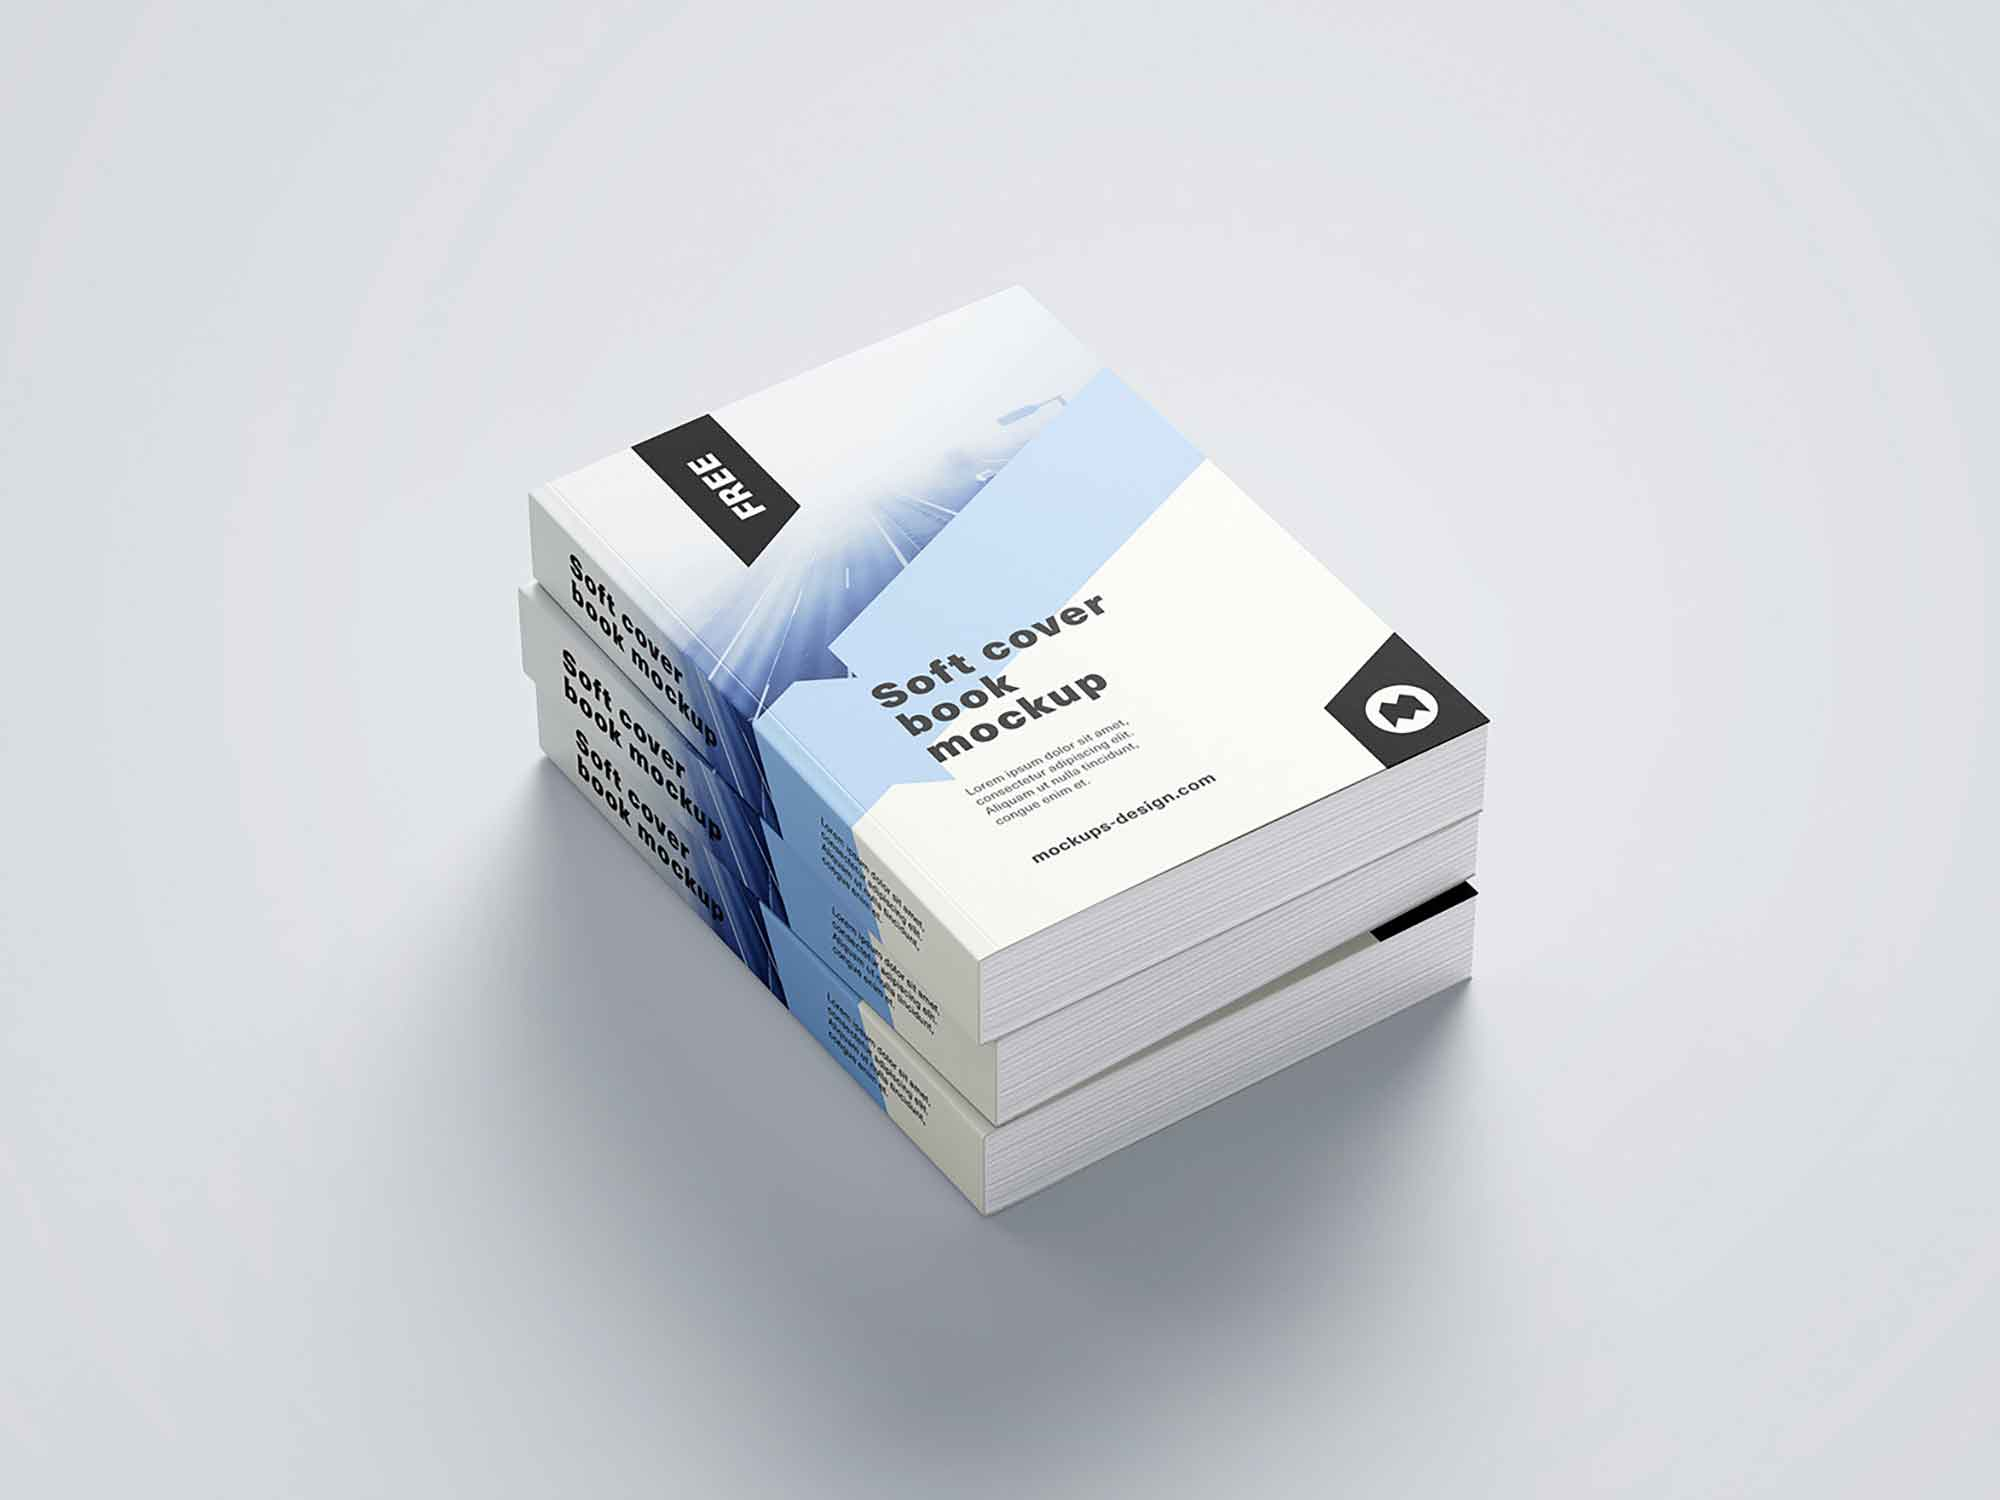 Thick Softcover Book Mockup 10